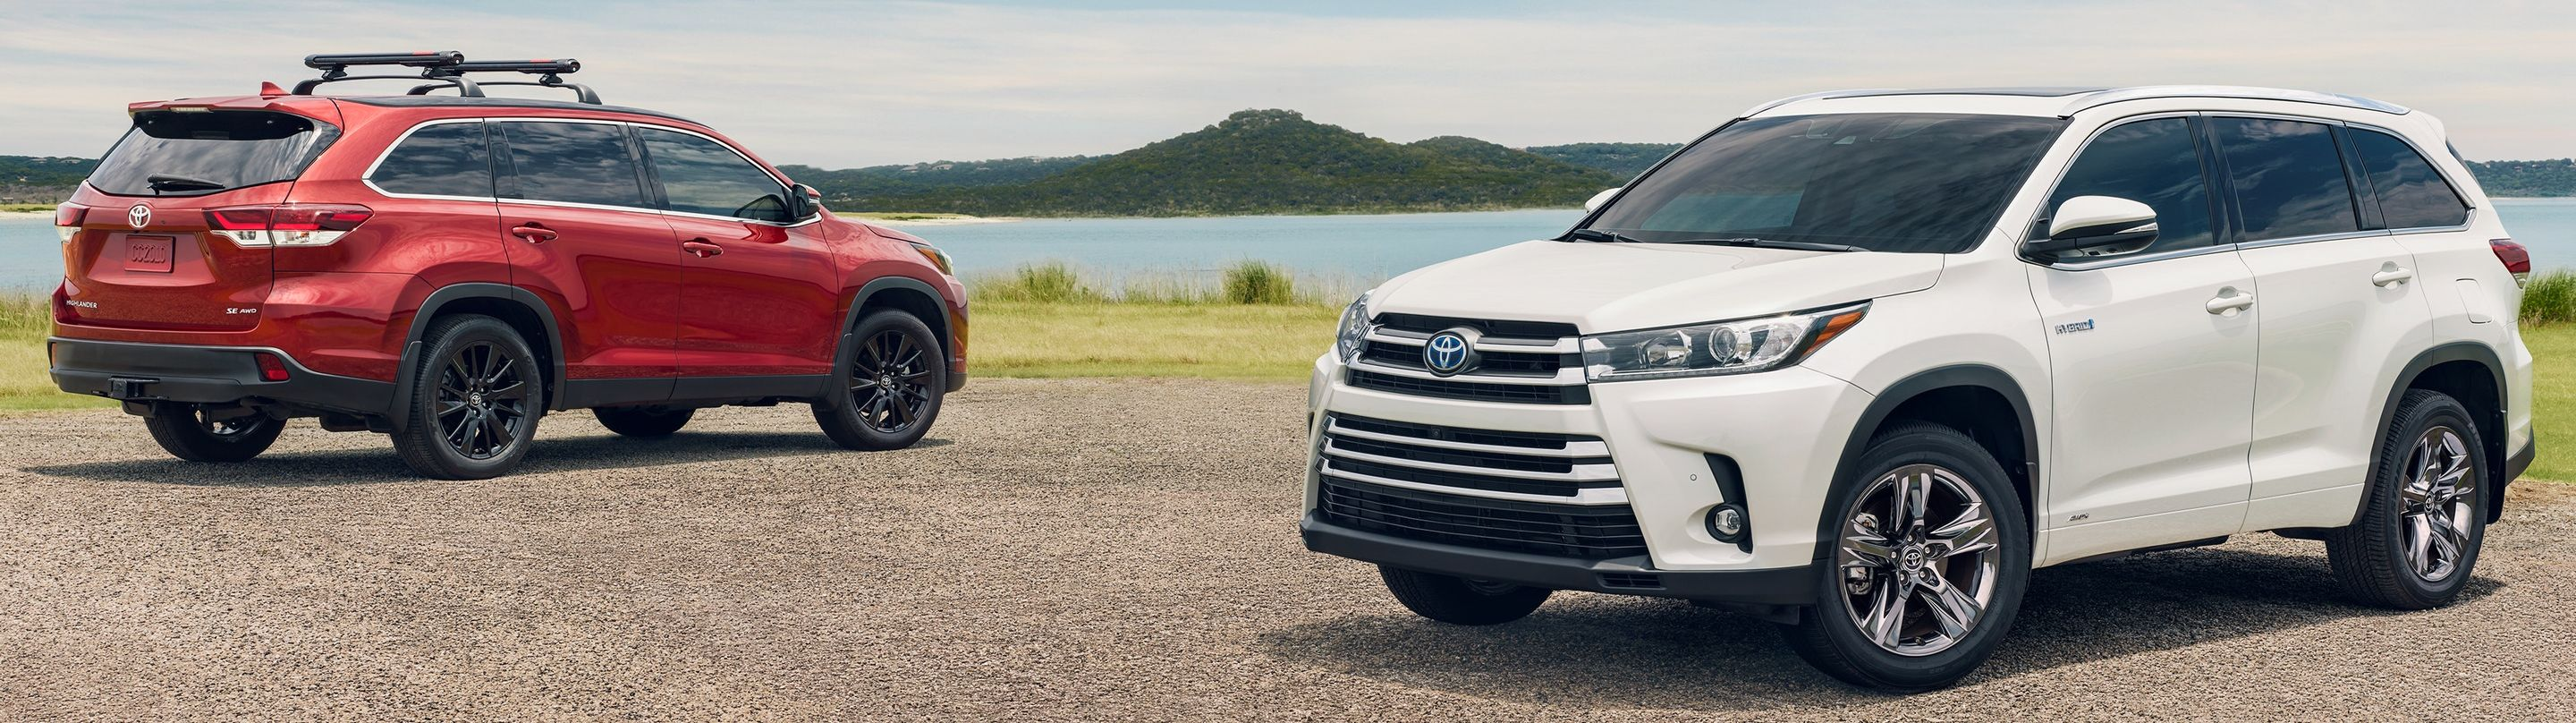 2019 Toyota Highlander for Sale near Des Moines, IA